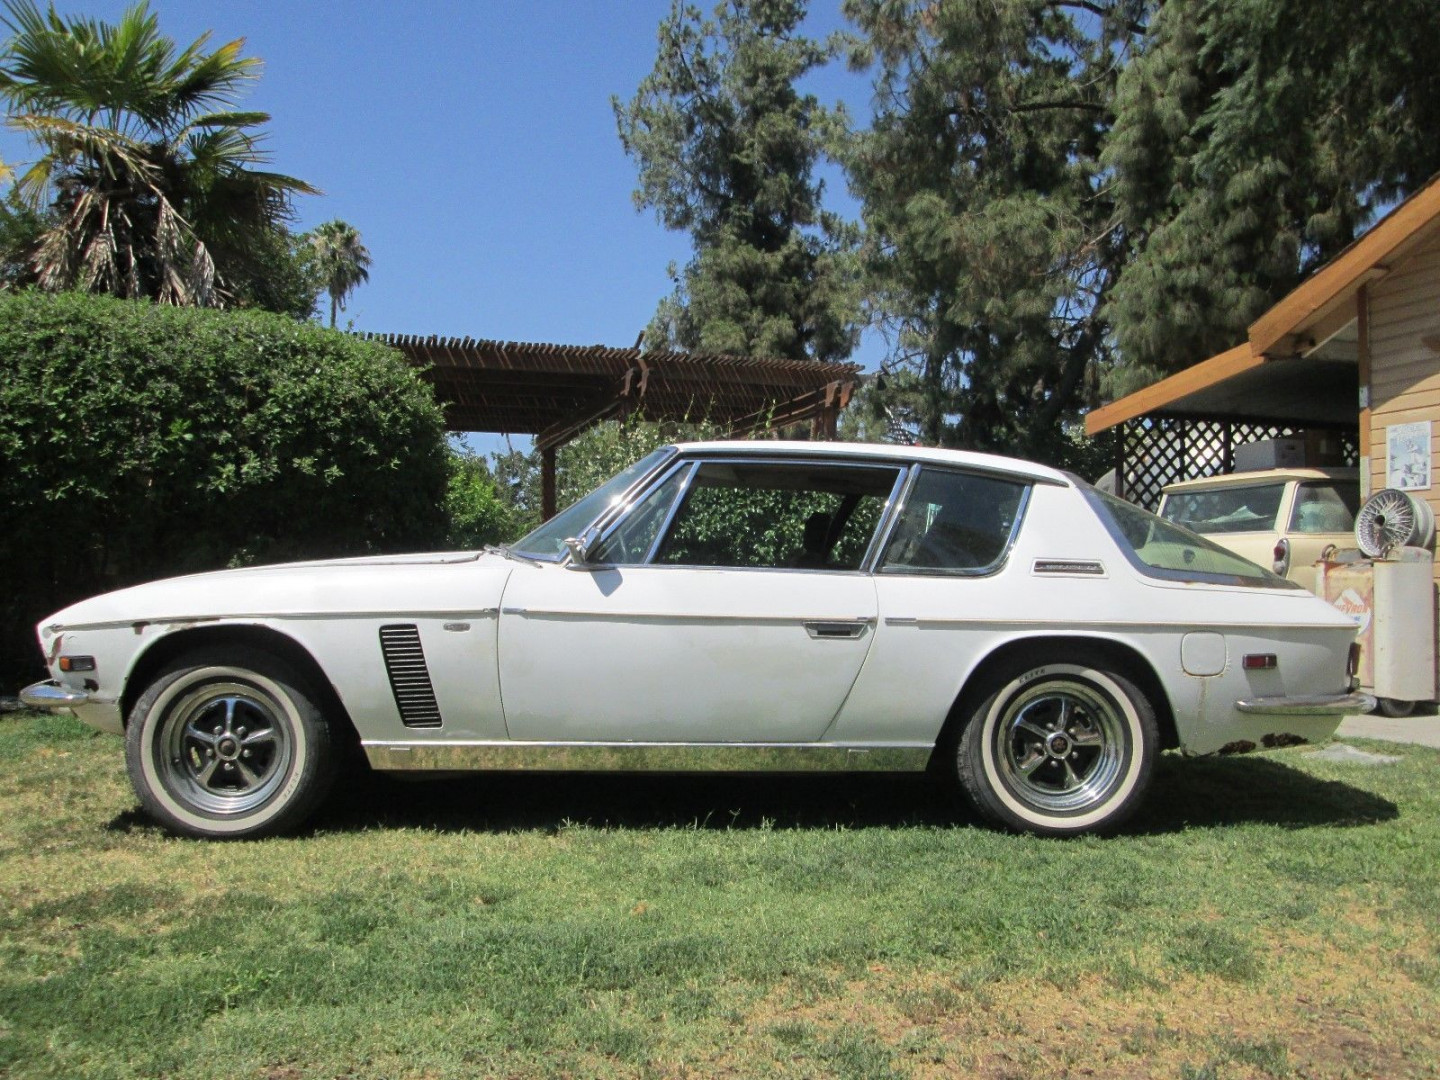 Jensen Interceptor Mk2 1970 - MBB Collection